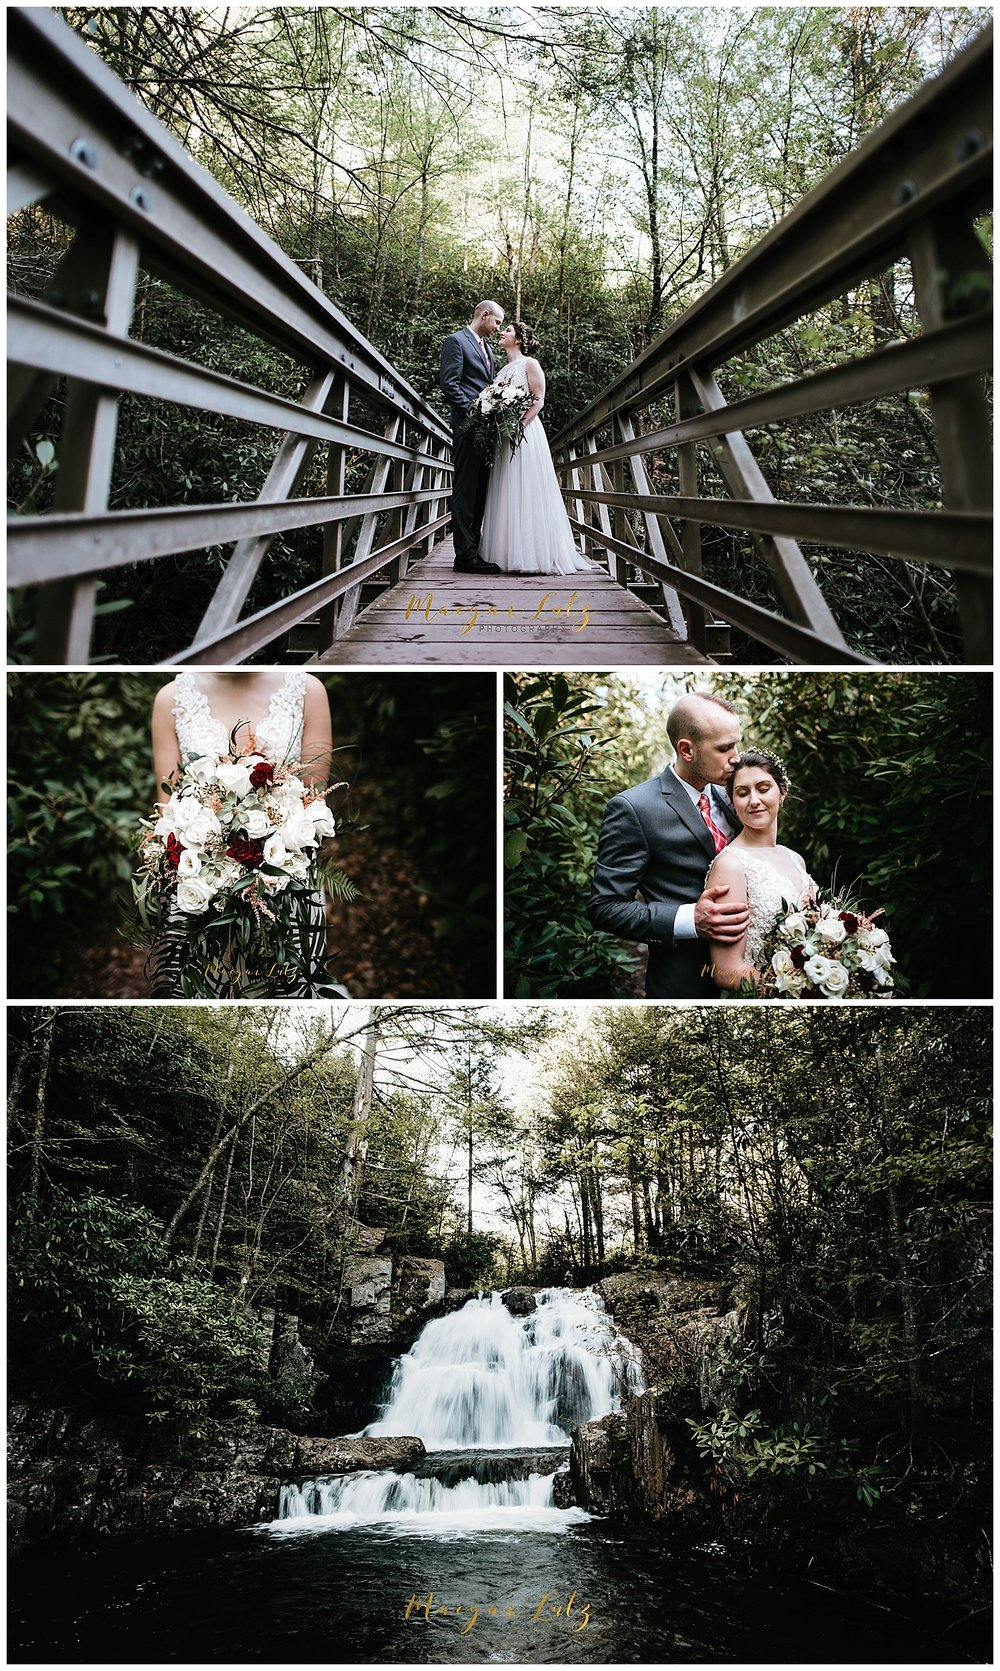 NEPA-wedding-photographer-elopement-at-hickory-run-hawk-falls-waterfall_0025.jpg